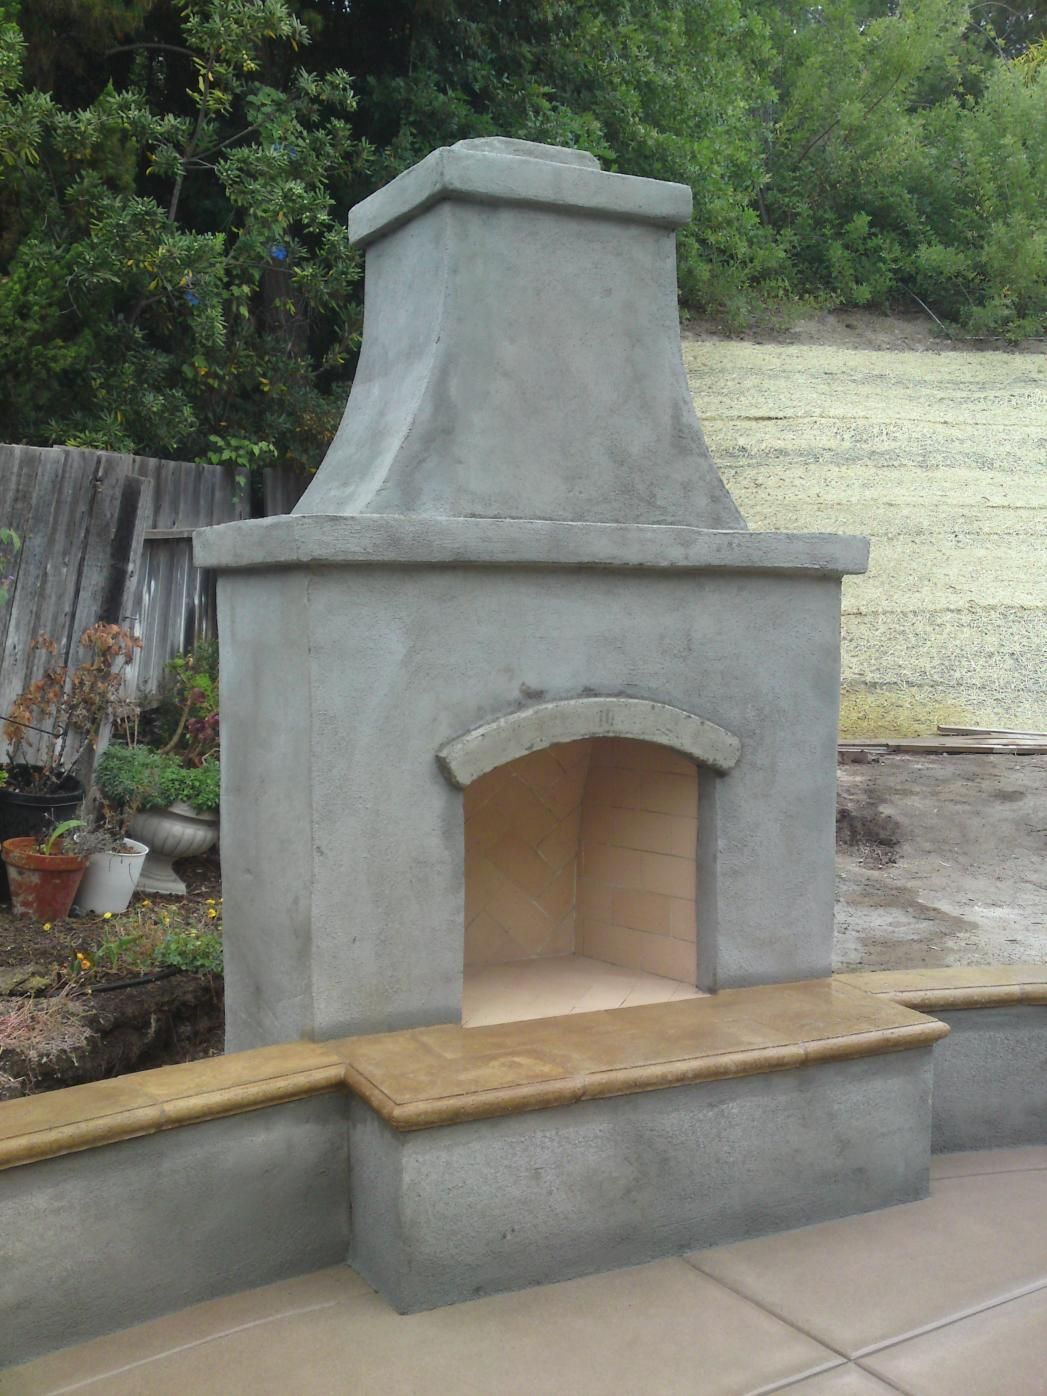 Outdoor Fireplace Pictures Detail On The Firebox With